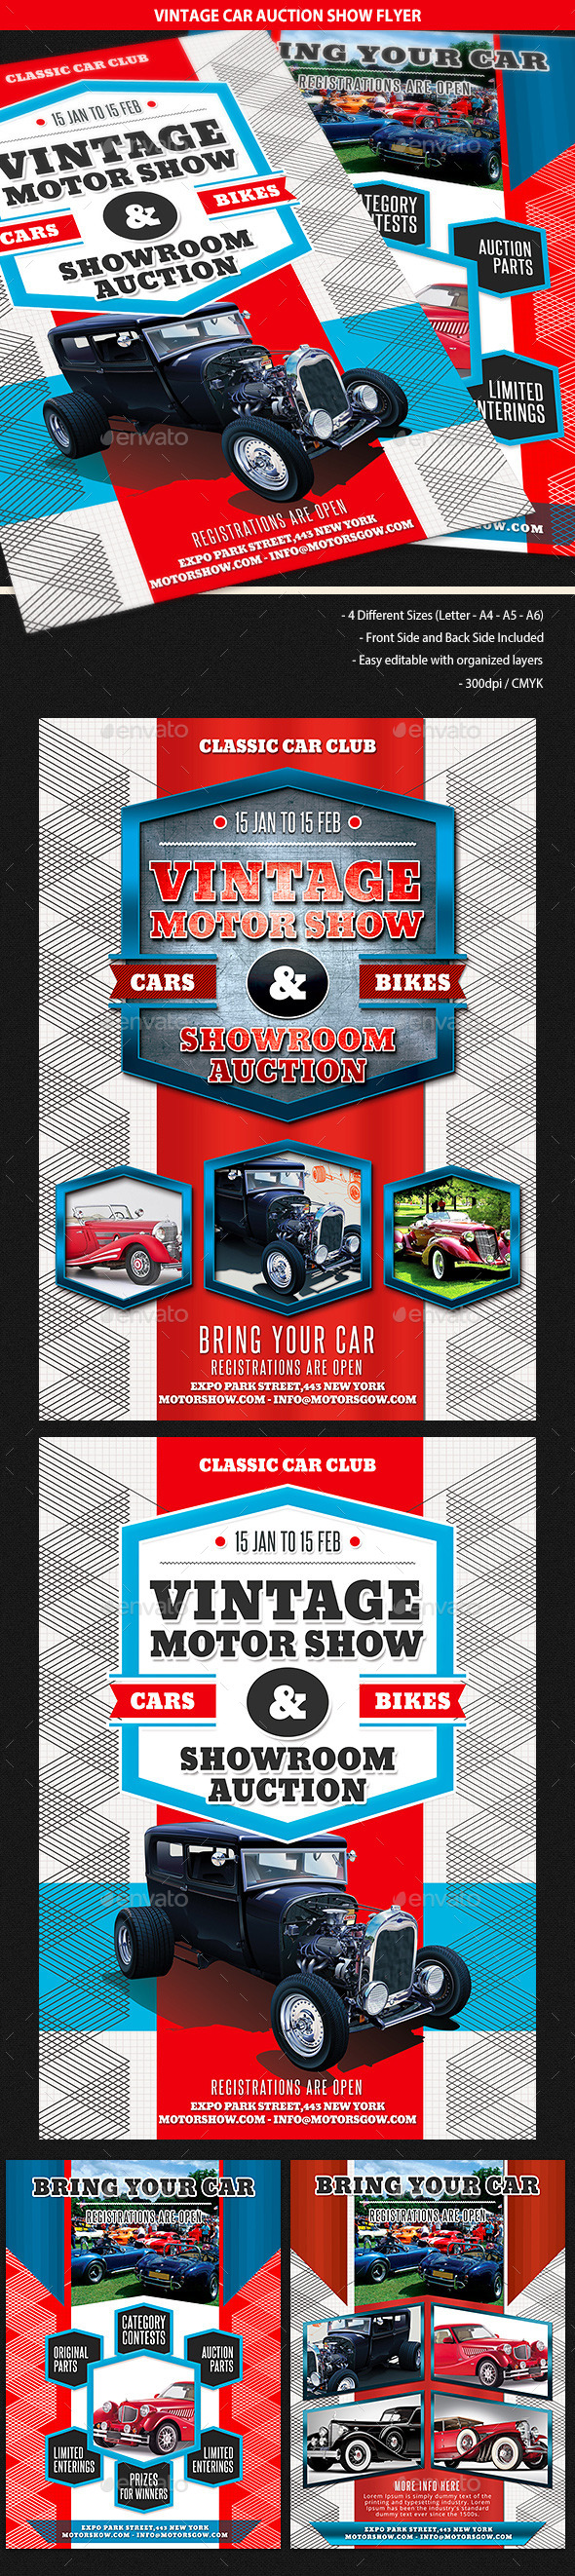 GraphicRiver Vintage Car Auction Show Business Flyer 9966469